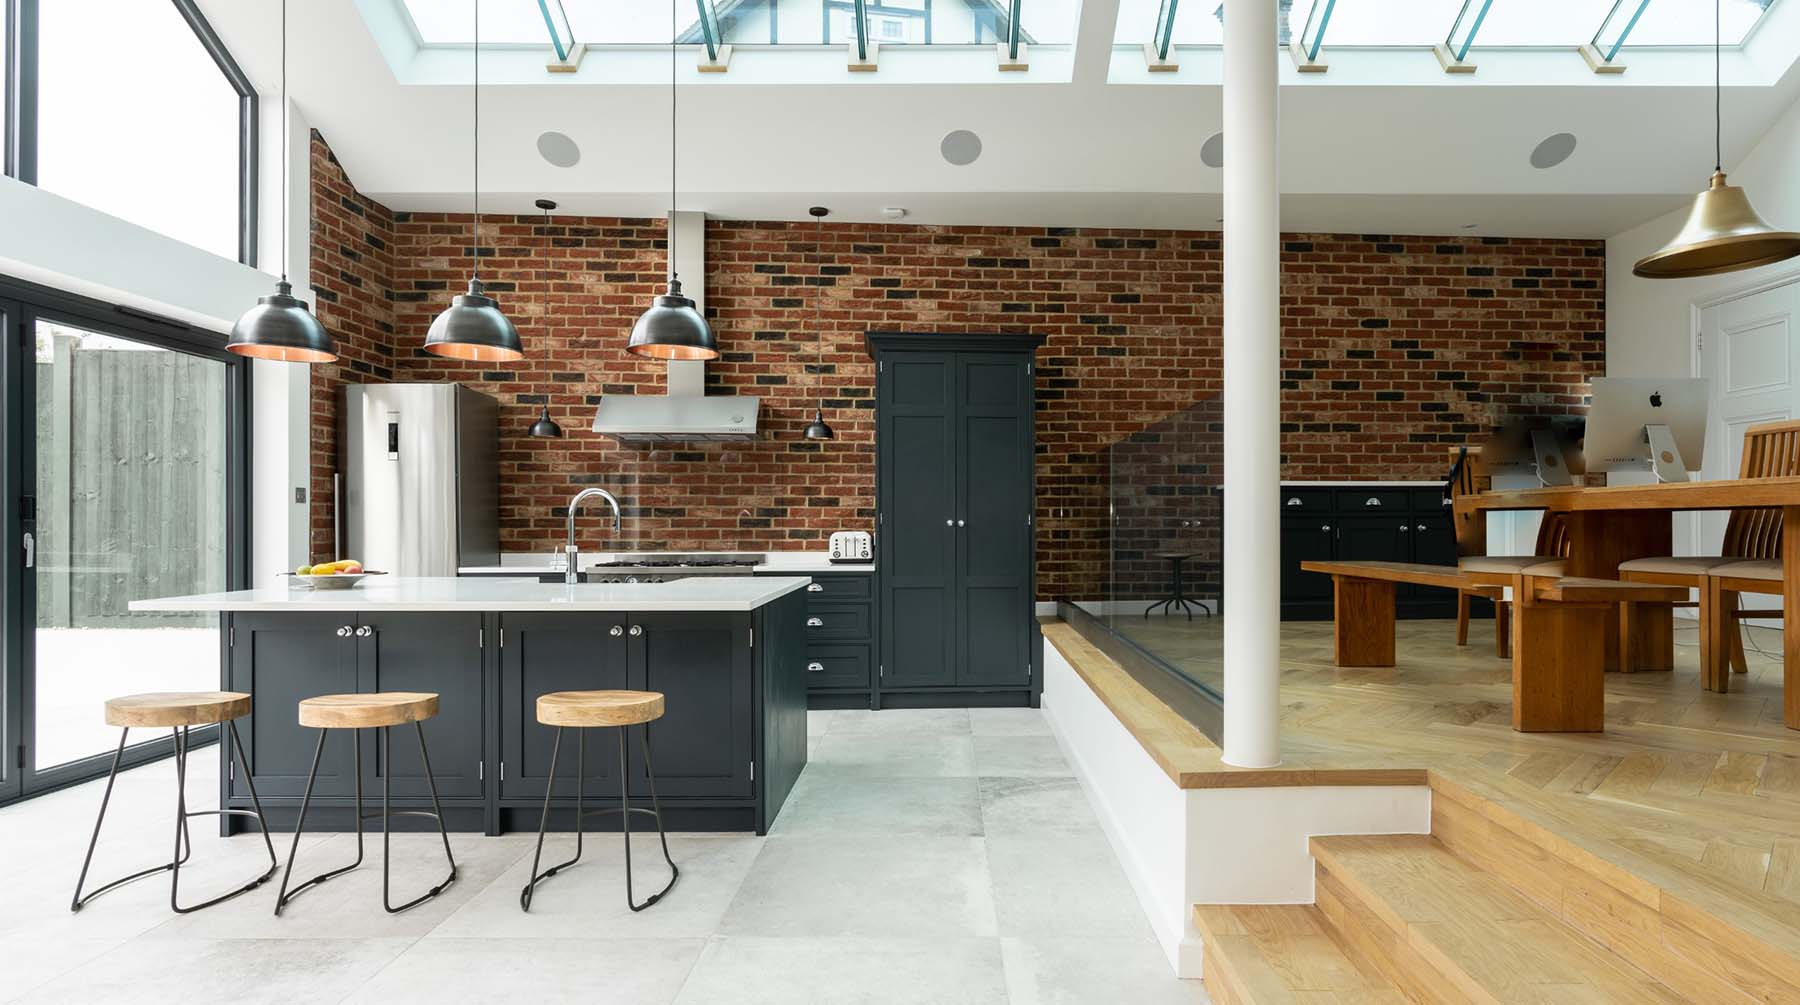 studio kitchen with black cabinets high ceilings highhats white countertops